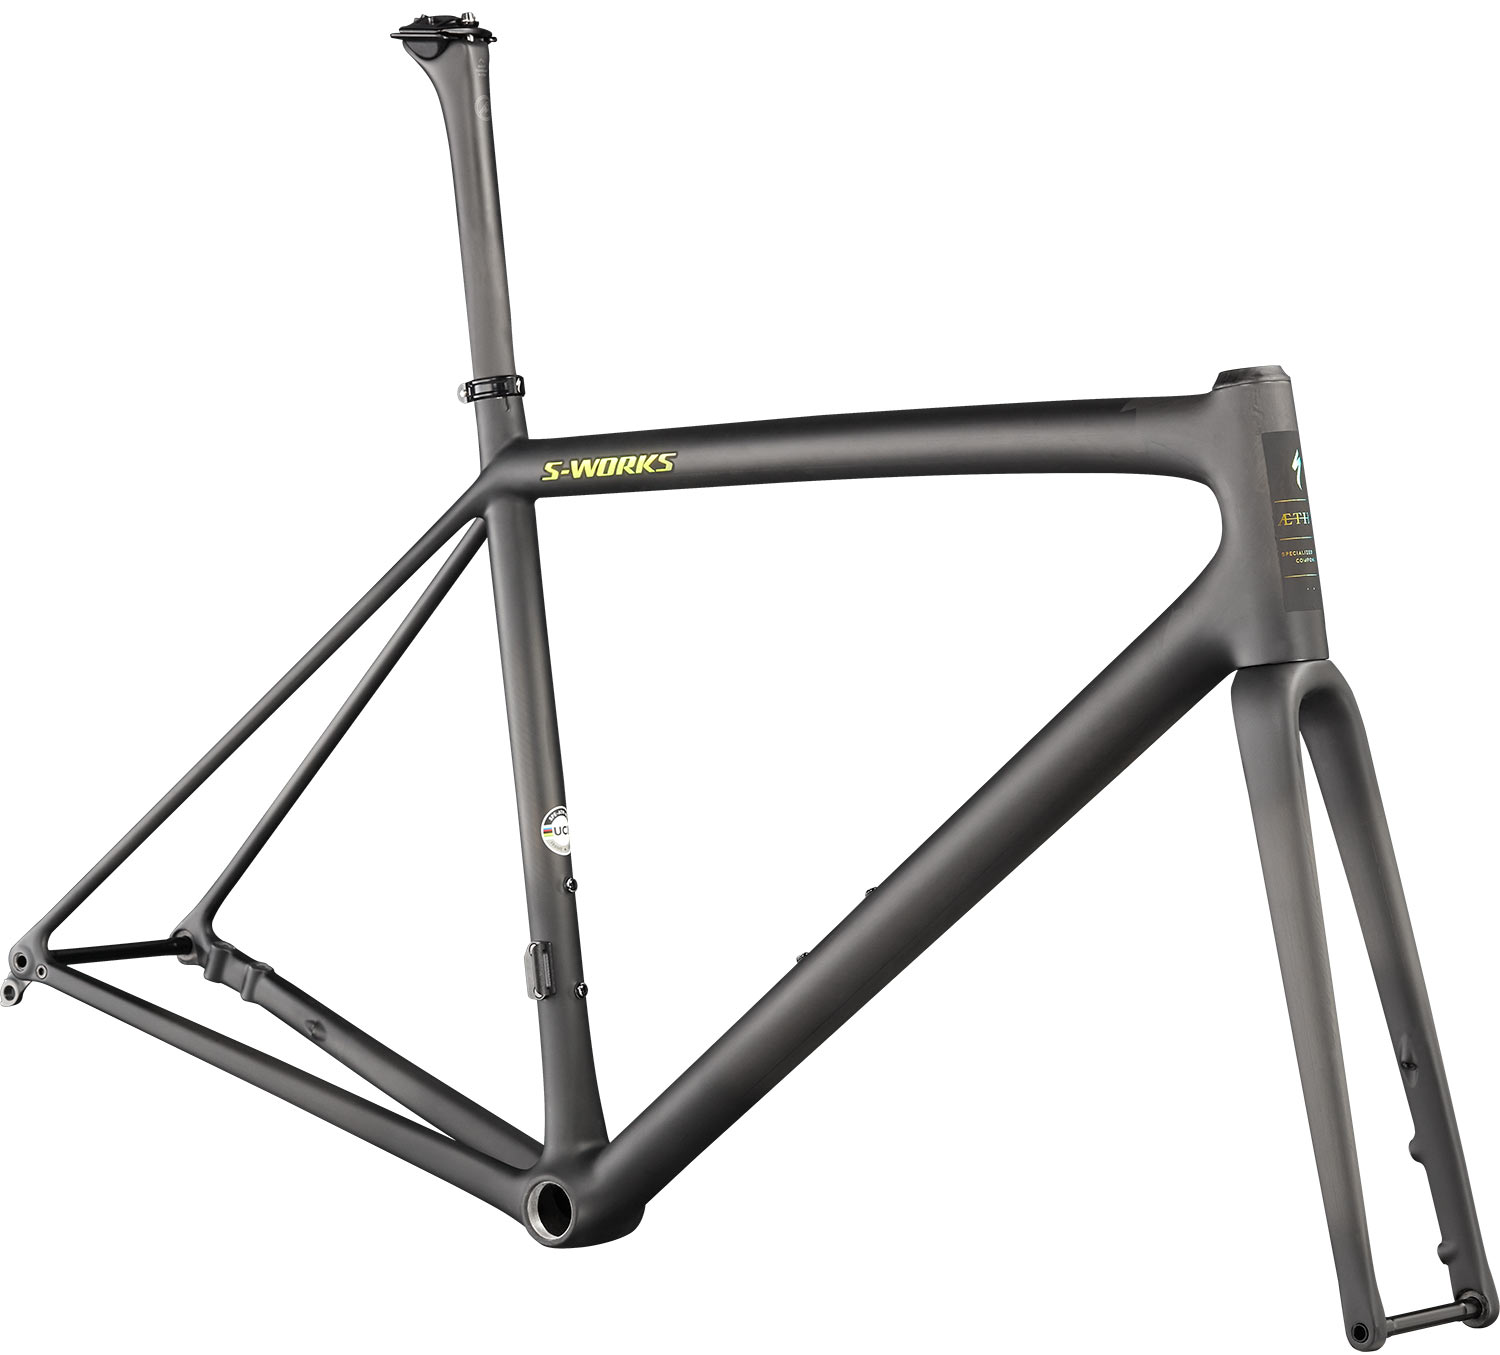 specialized aethos s-works jet fuel colorway in unpainted carbon fiber